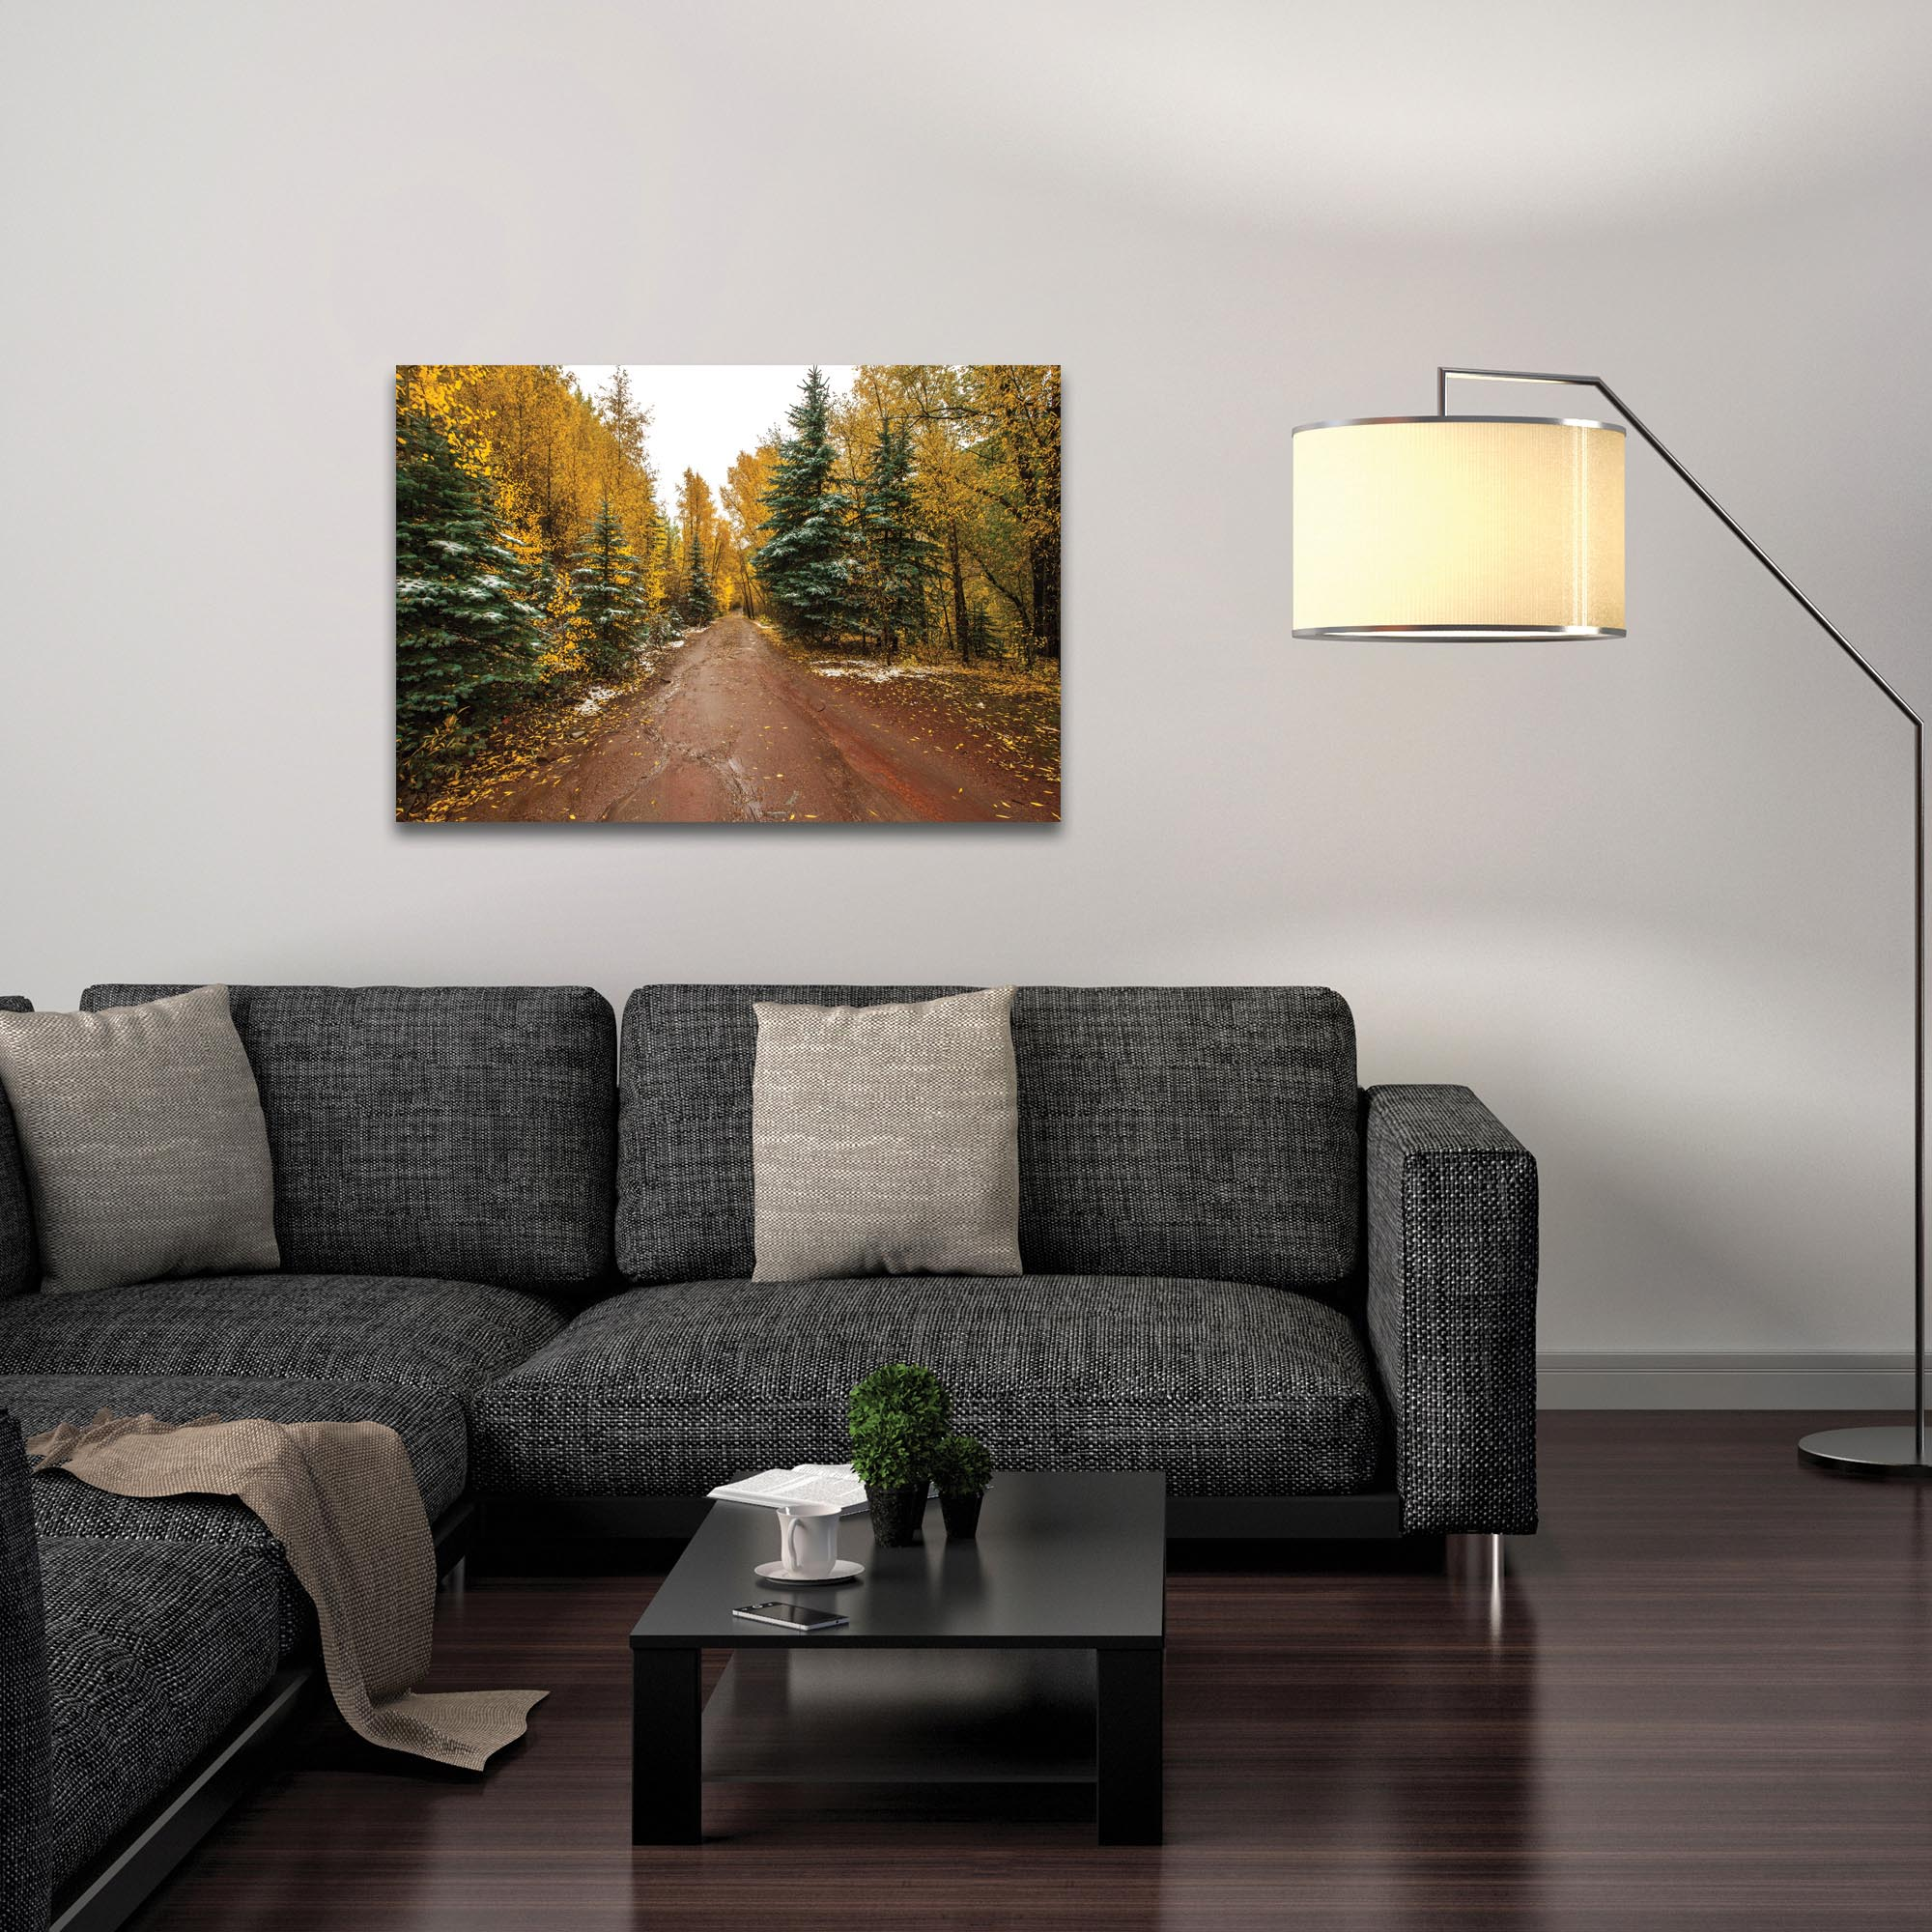 Landscape Photography 'Road Less Traveled' - Autumn Trees Art on Metal or Plexiglass - Lifestyle View